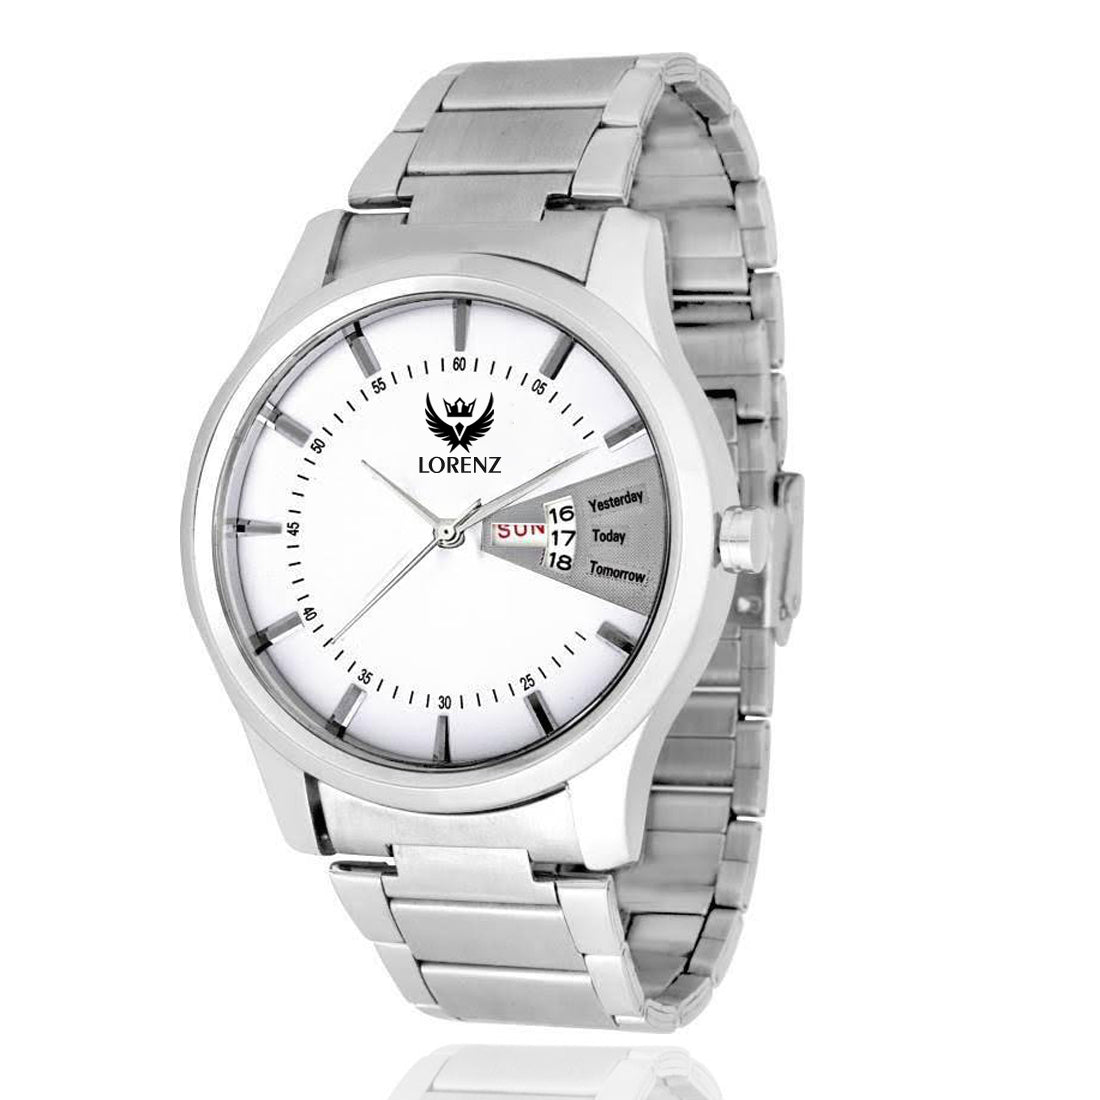 Lorenz Mk-1047A Day & Date Edition White Dial Analog Watch for Men